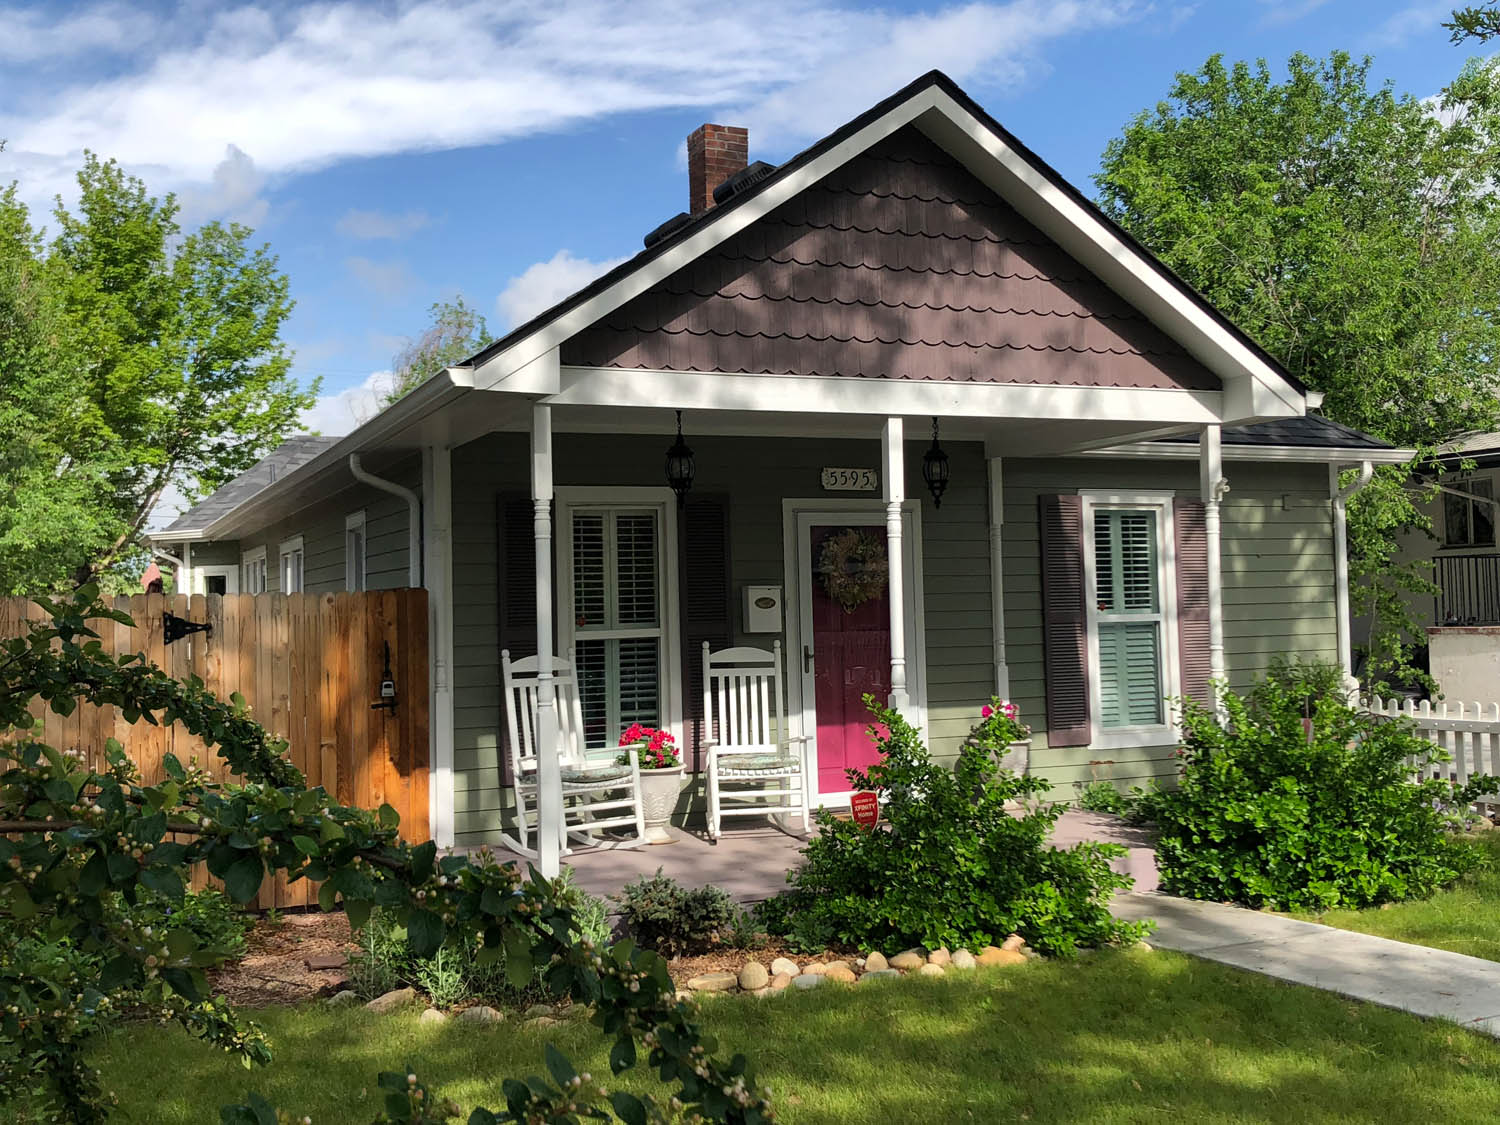 Ashley's cottage home in historic Littleton, Colorado